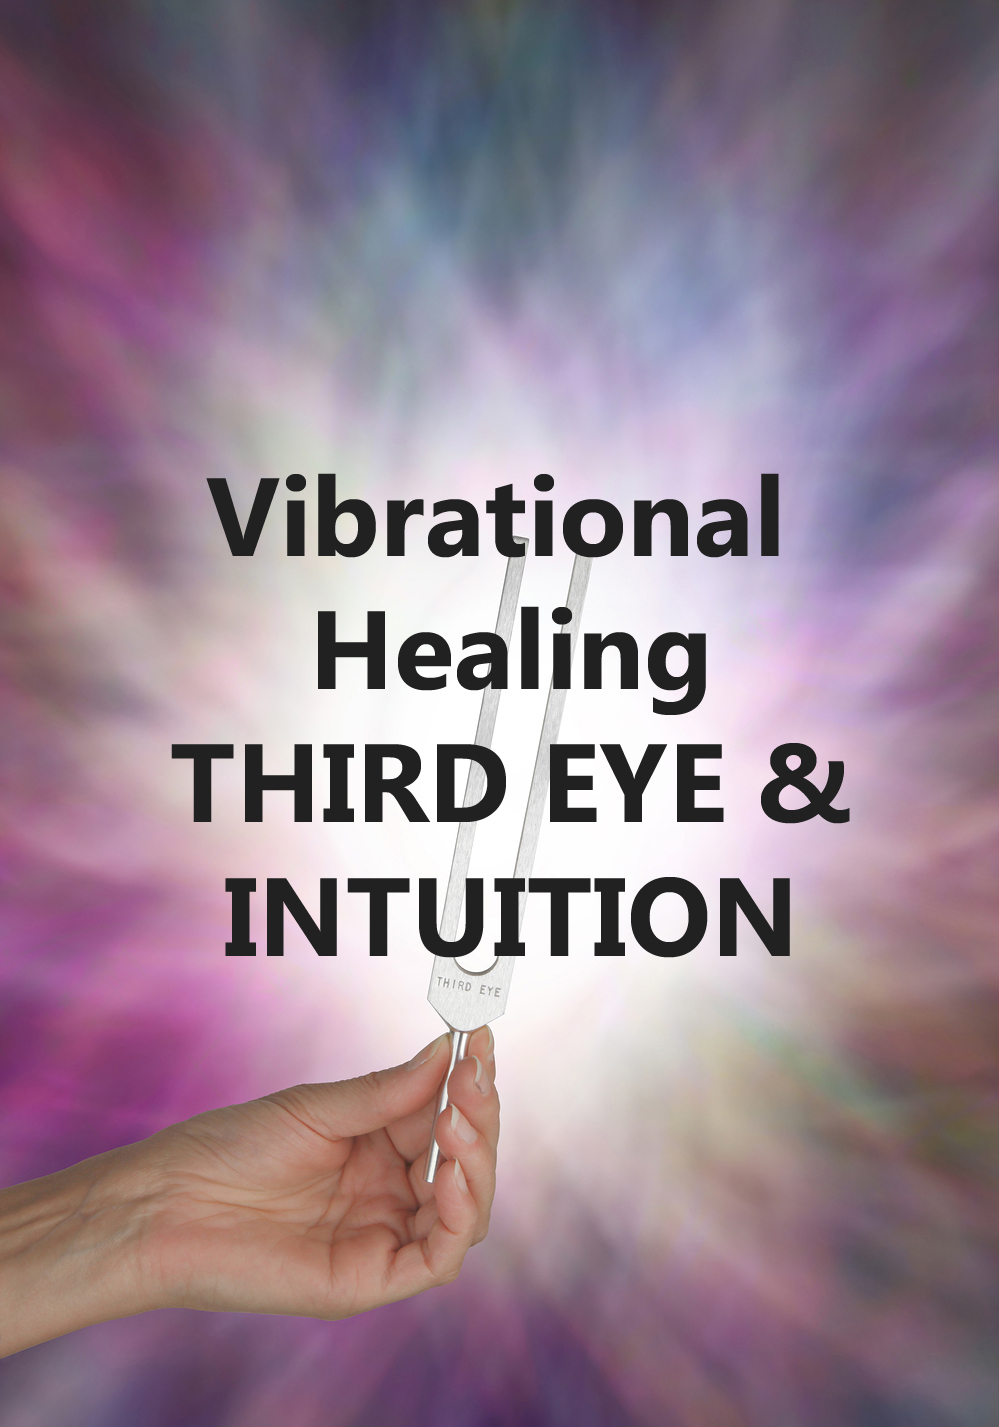 Vibrational Healing-opening the third eye & intuition